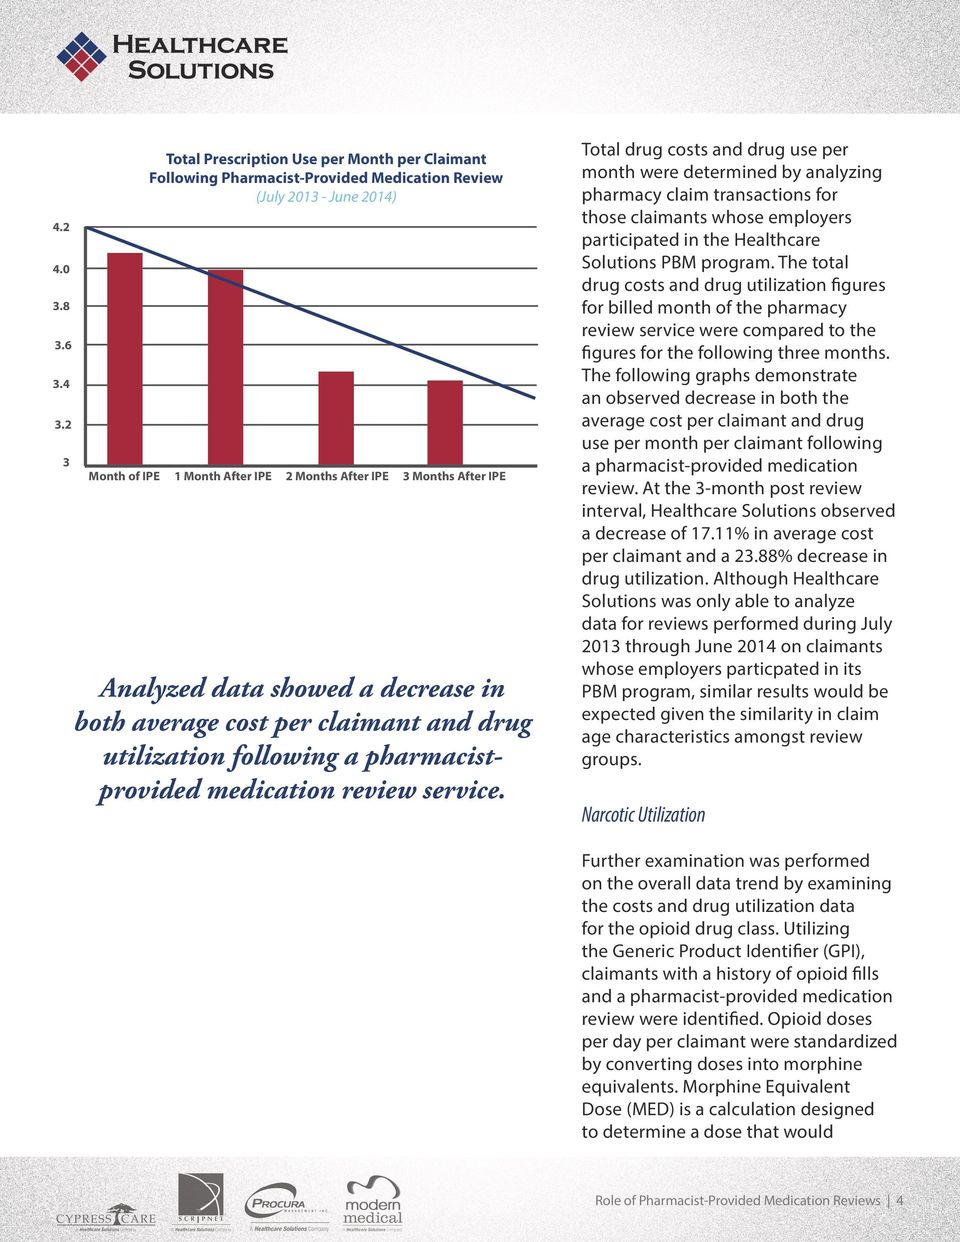 data showed a decrease in both average cost per claimant and drug utilization following a pharmacistprovided medication review service.